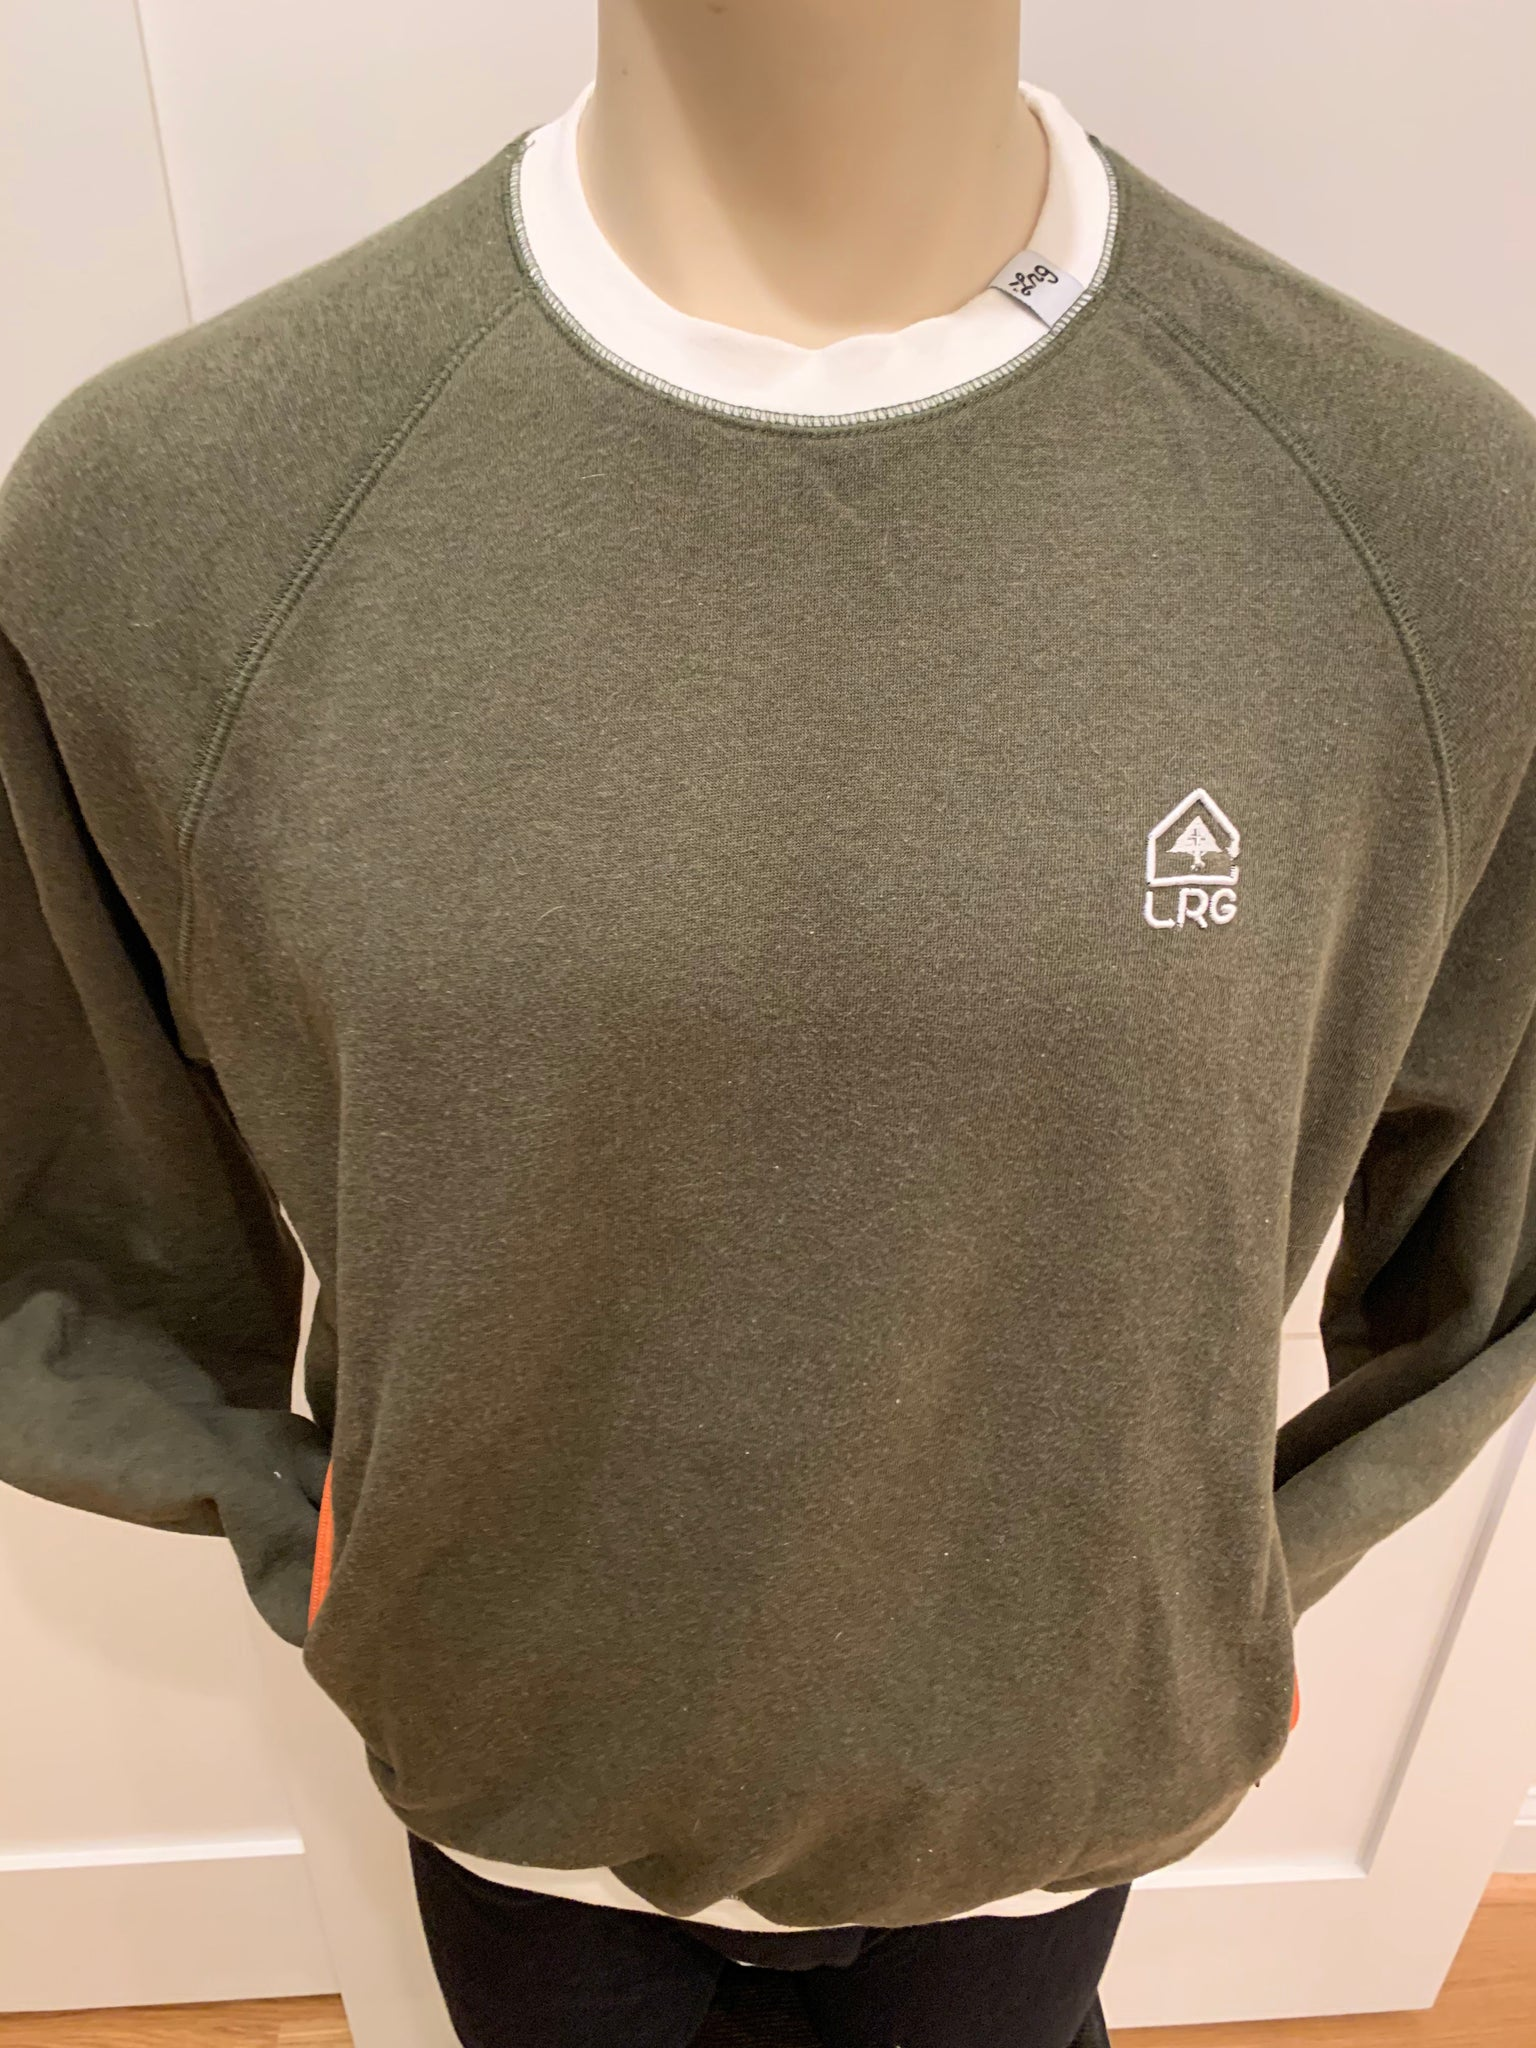 LRG Crew Neck Sweatshirt - Medium